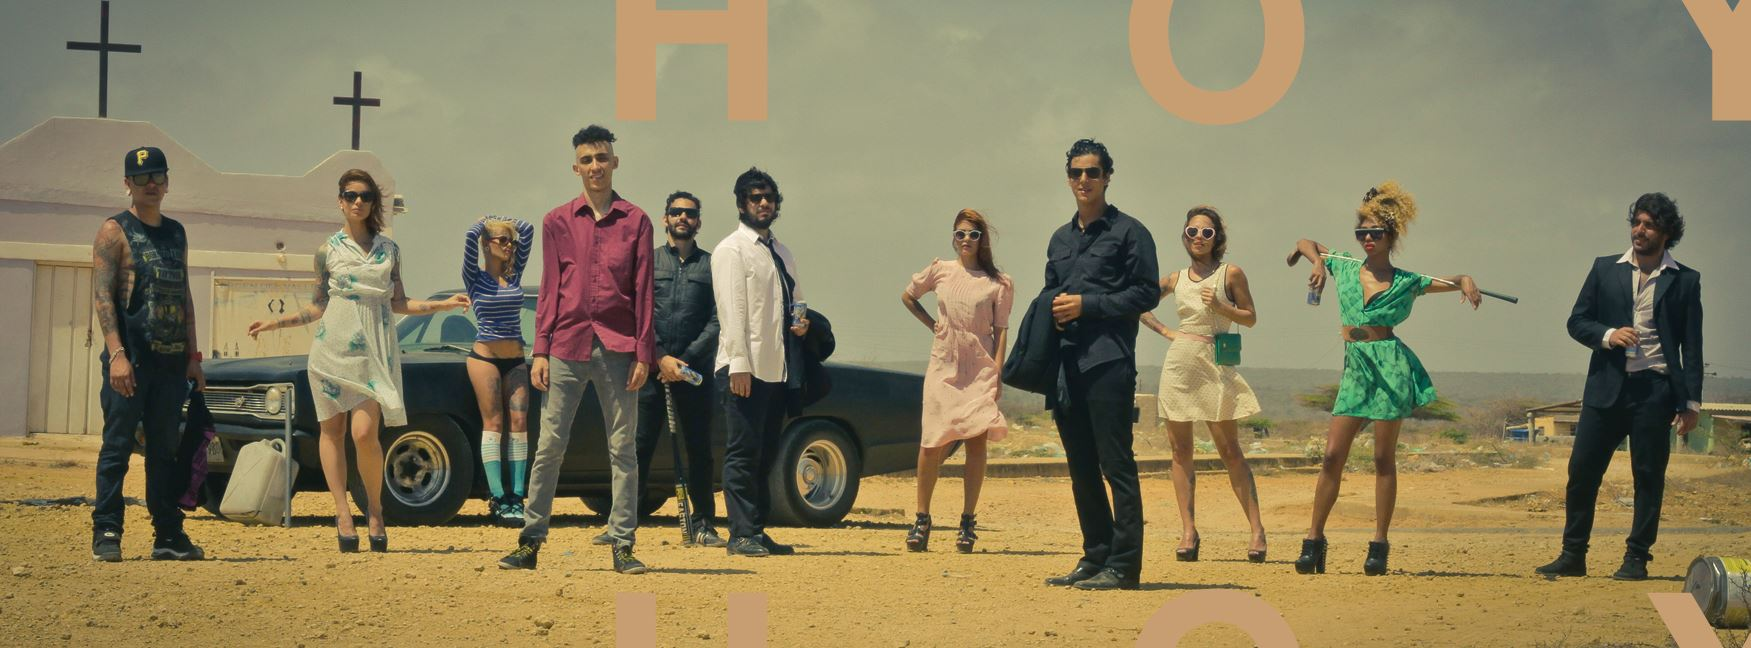 New Video Release Press Image